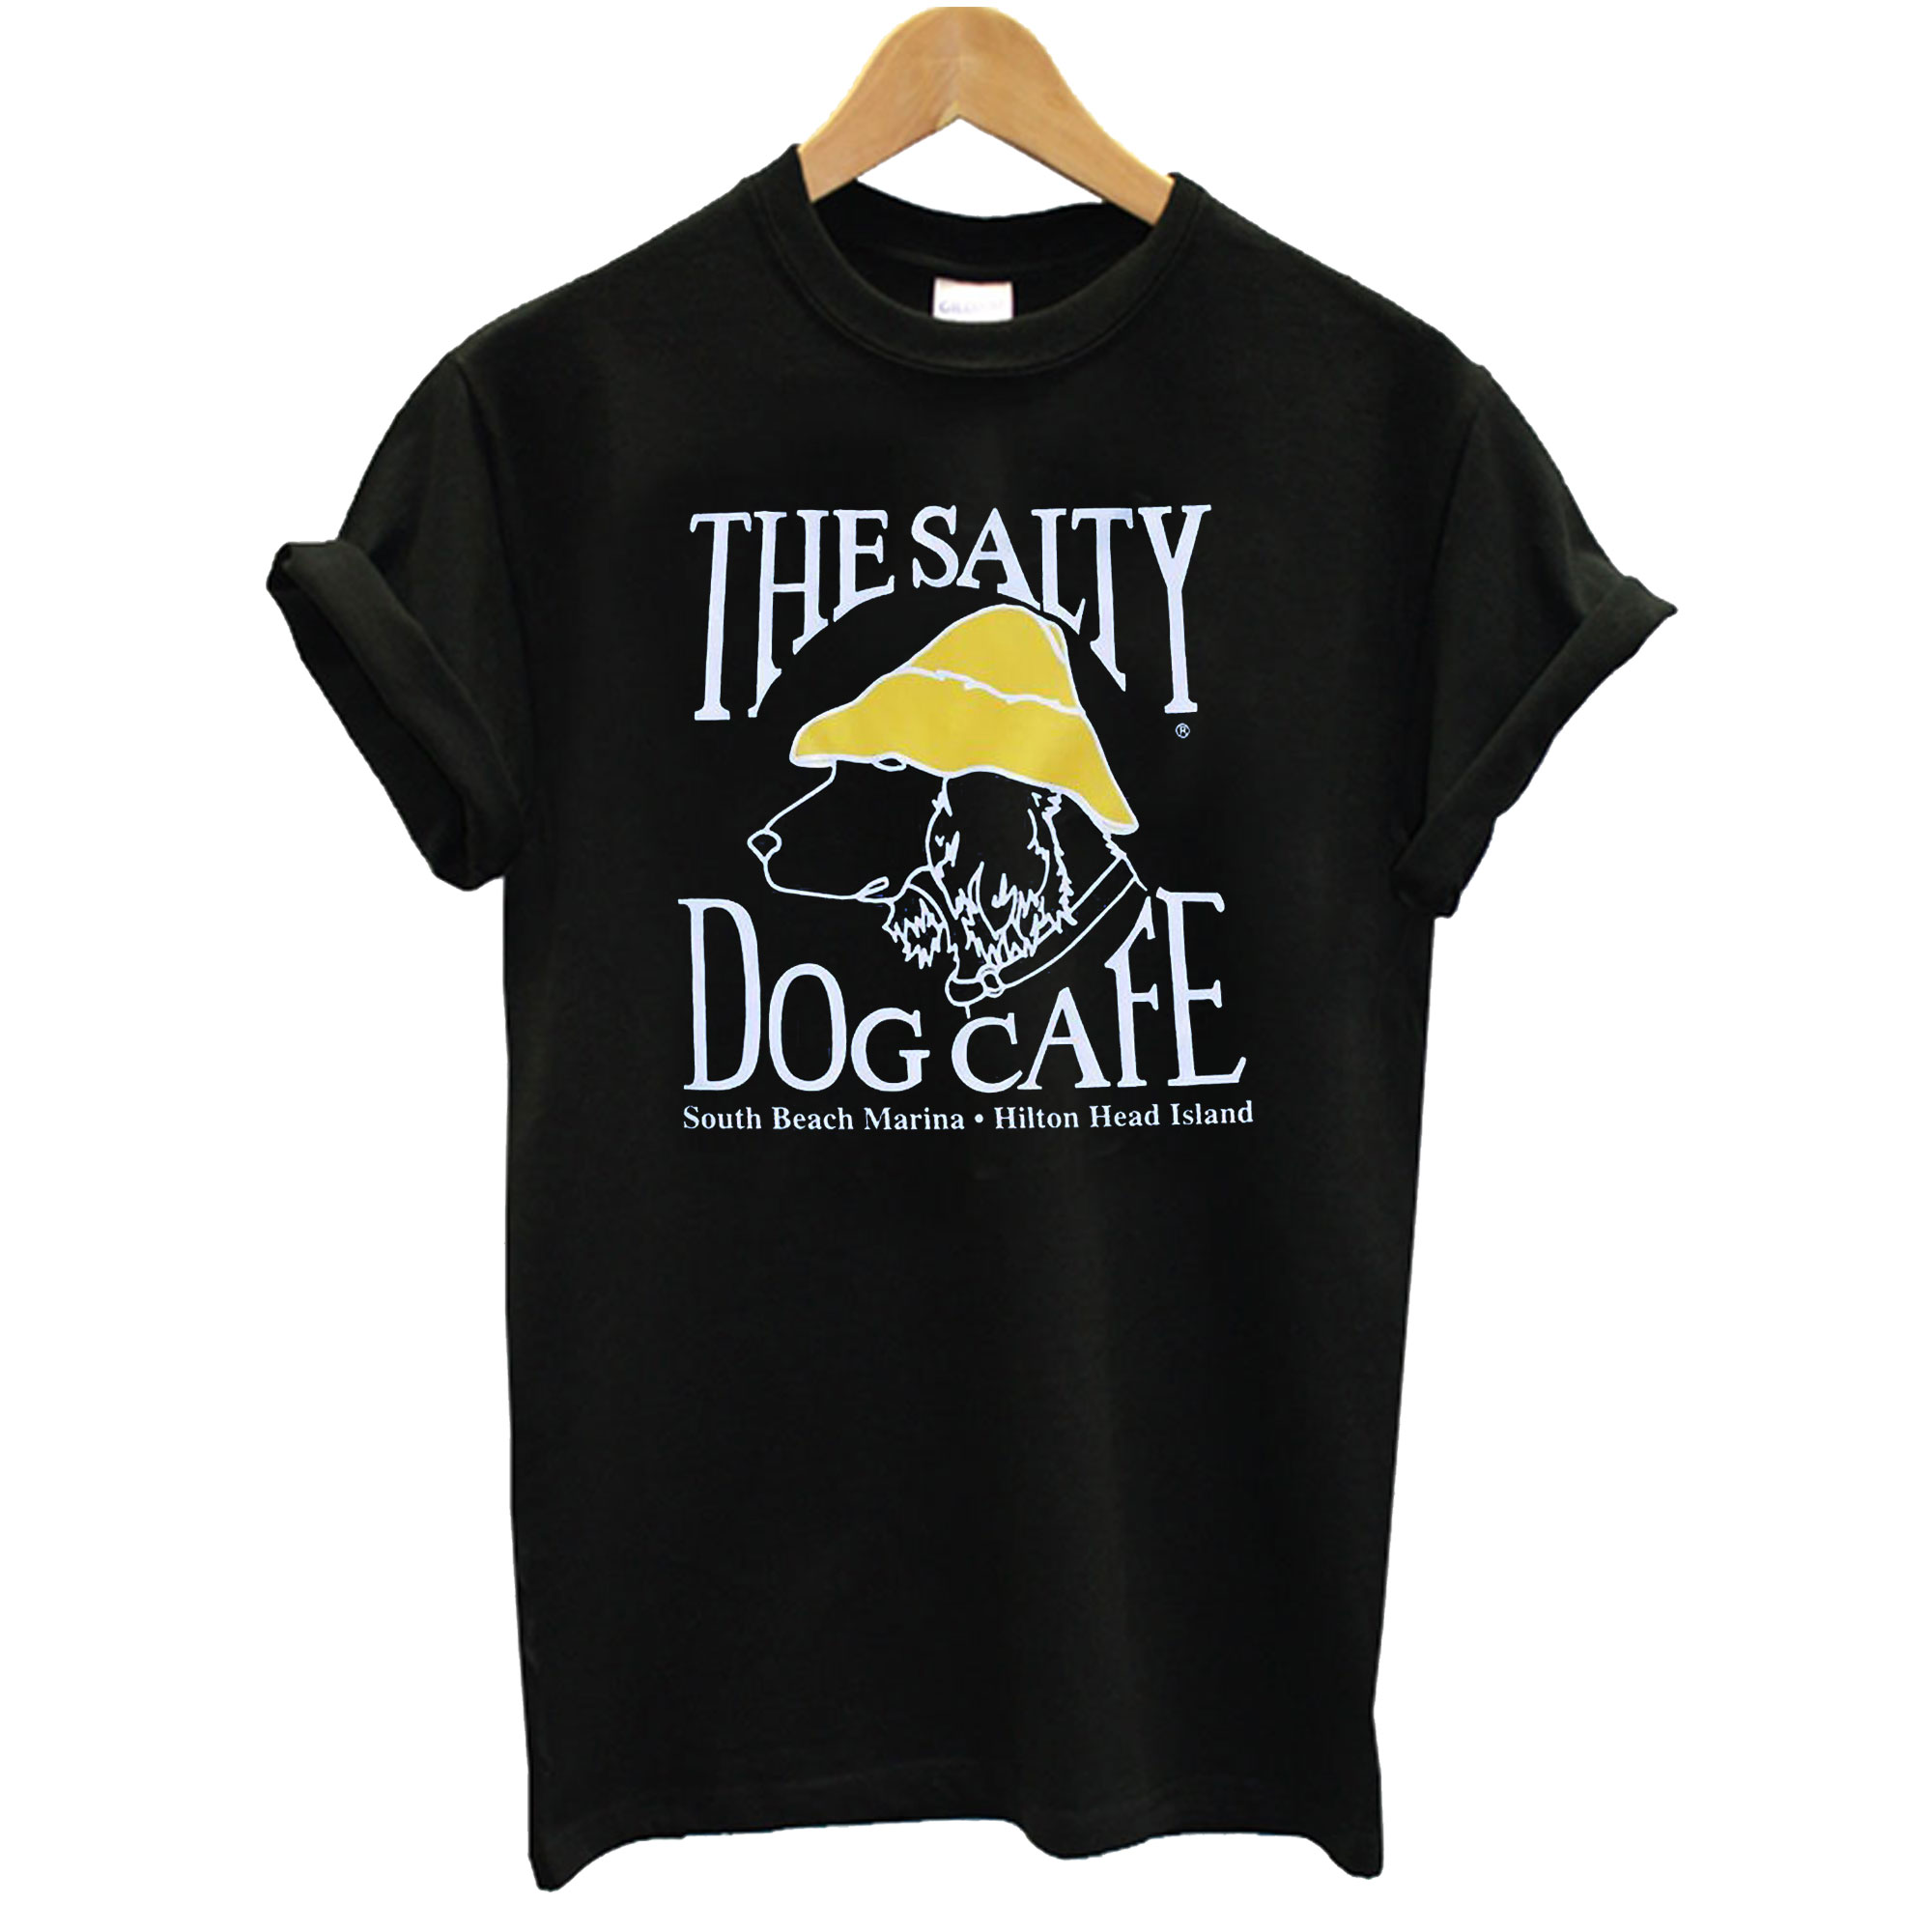 Vintage The Salty T-Shirt